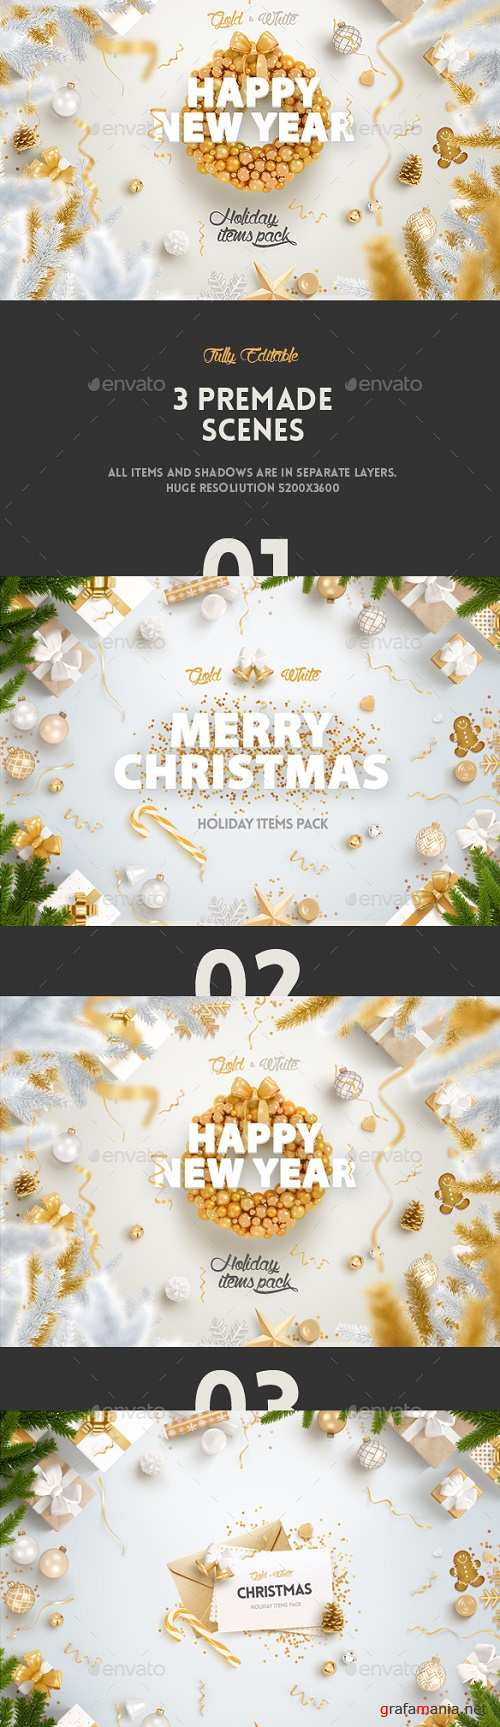 Gold & White - Christmas, New Year Pack - 14017899